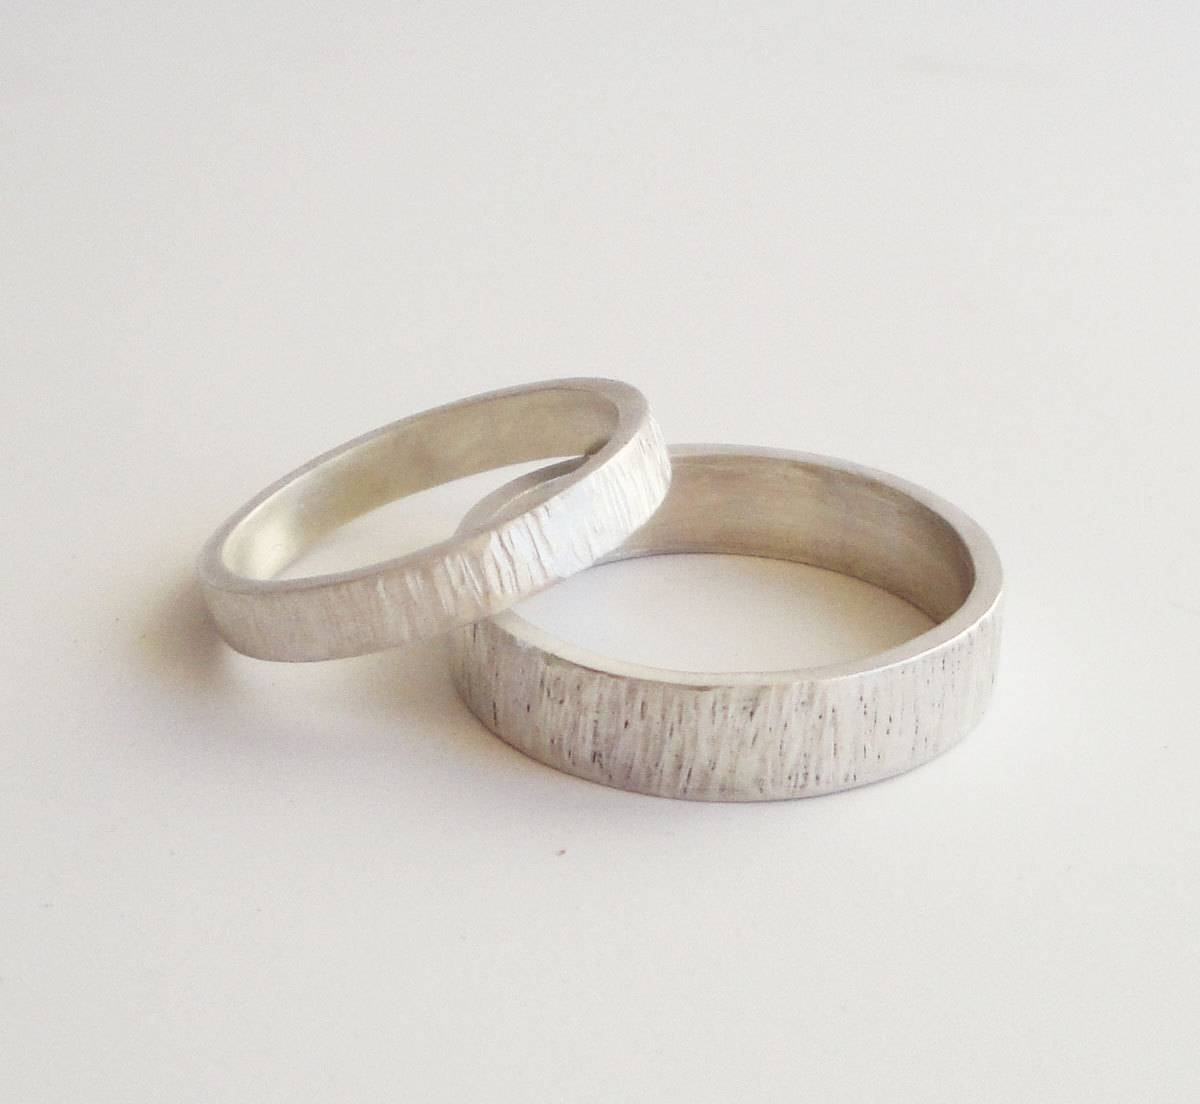 Silver Wedding Rings Set Handmade Silver Wedding Band Set With Regard To Silver Wedding Bands (Gallery 10 of 15)